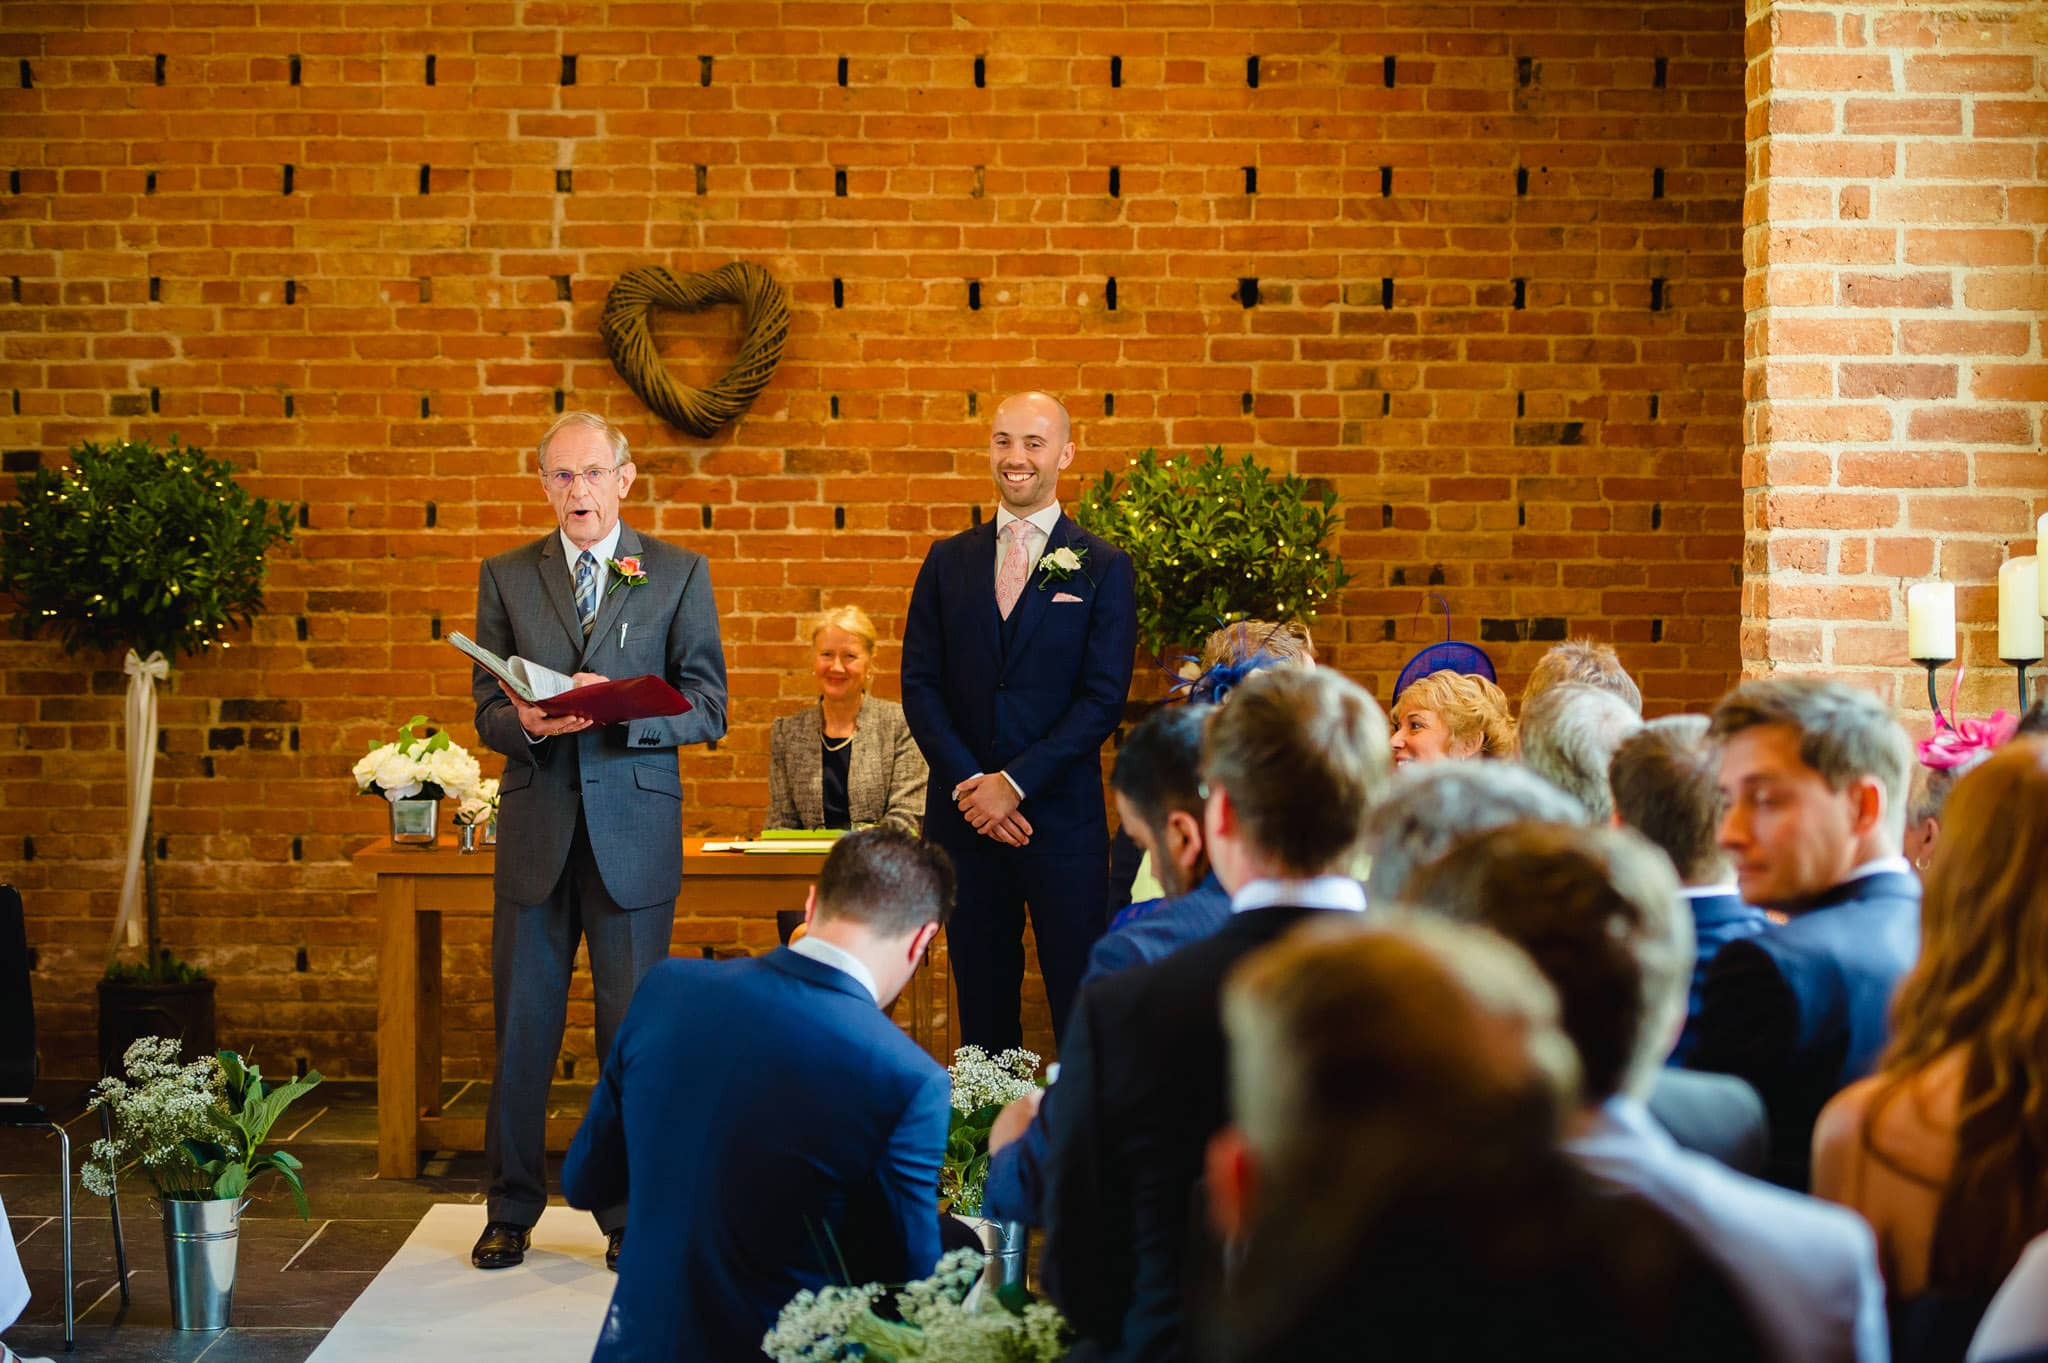 wedding at redhouse barn 65 - Wedding at Redhouse Barn in Stoke Prior, Worcestershire